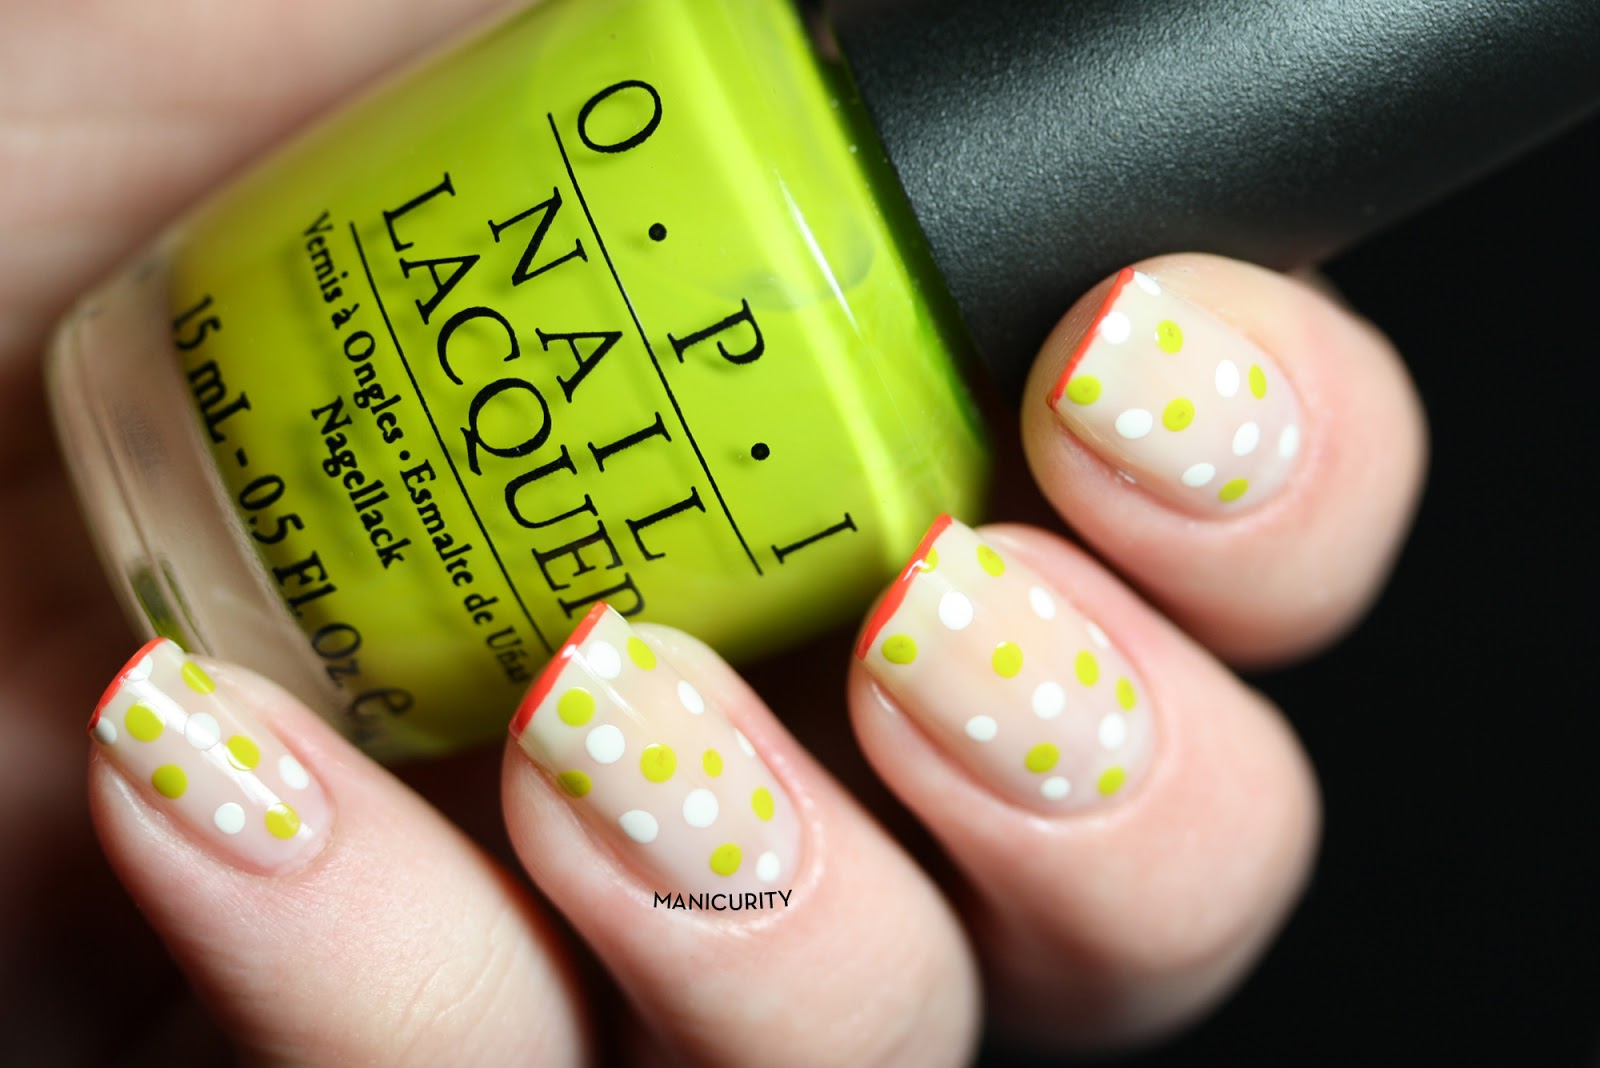 Manicurity: Tri-Polish Challenge: Springy Sheer Dotticure